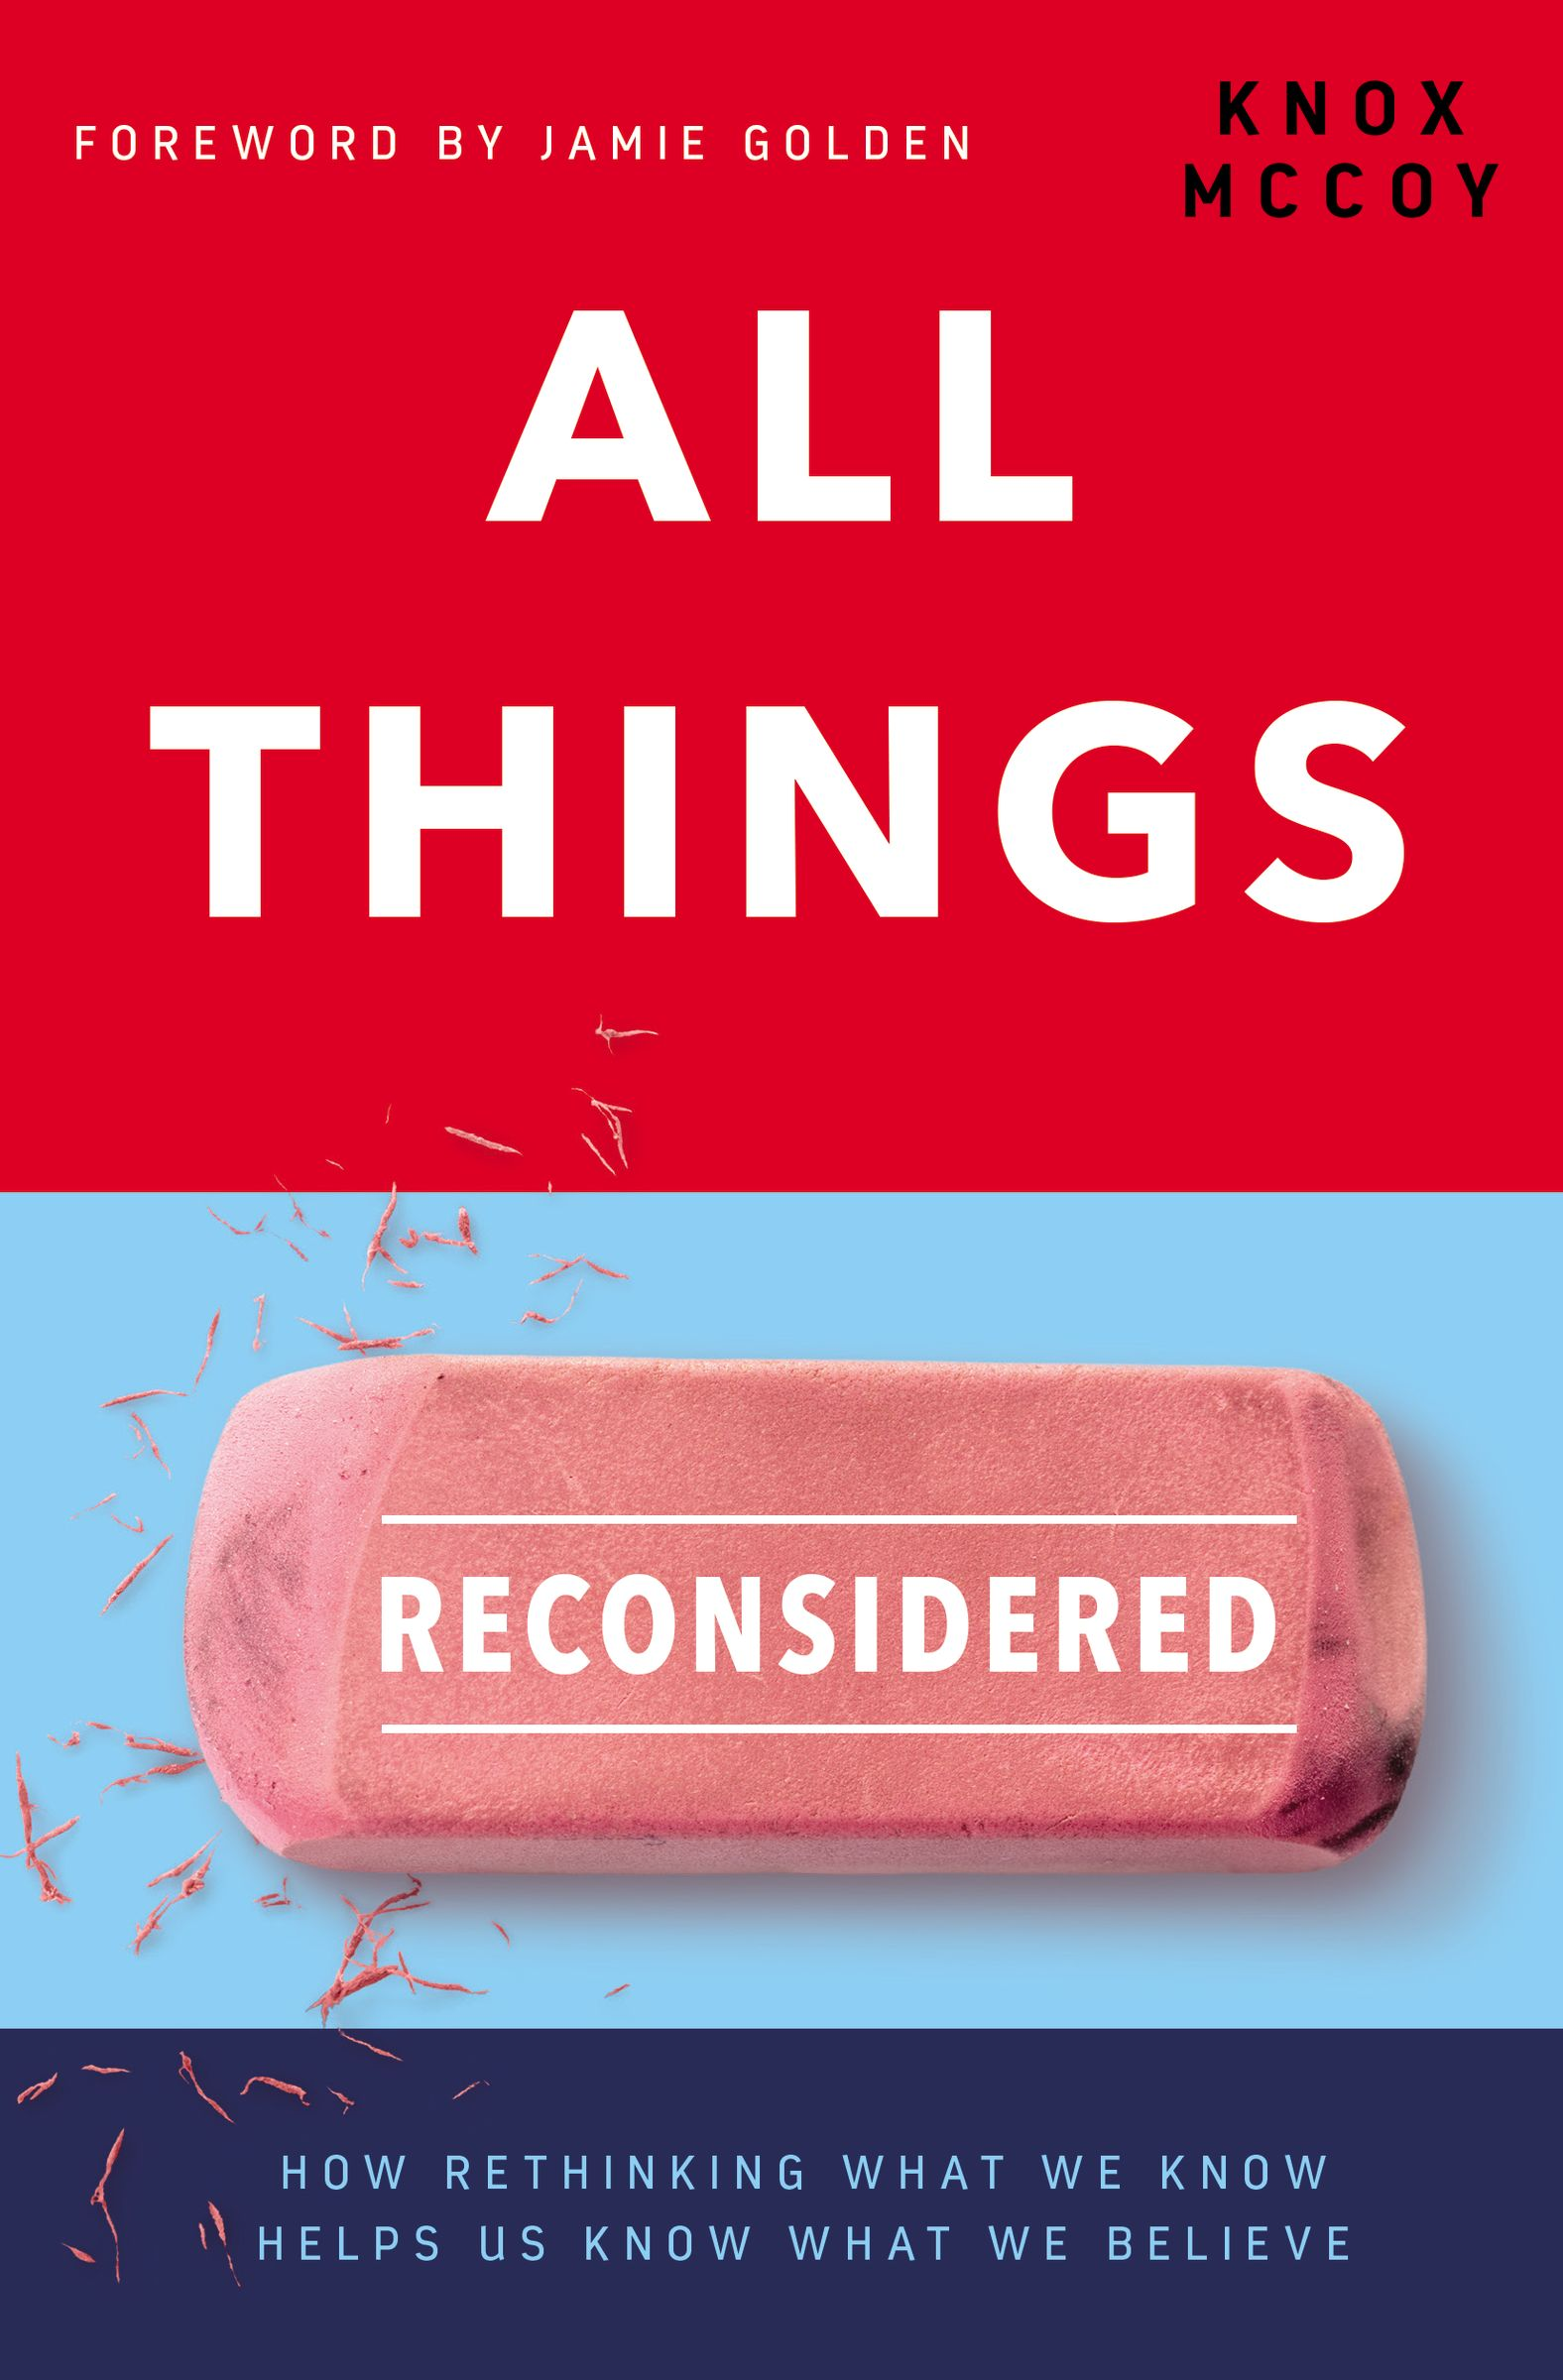 All Things Reconsidered by Knox McCoy